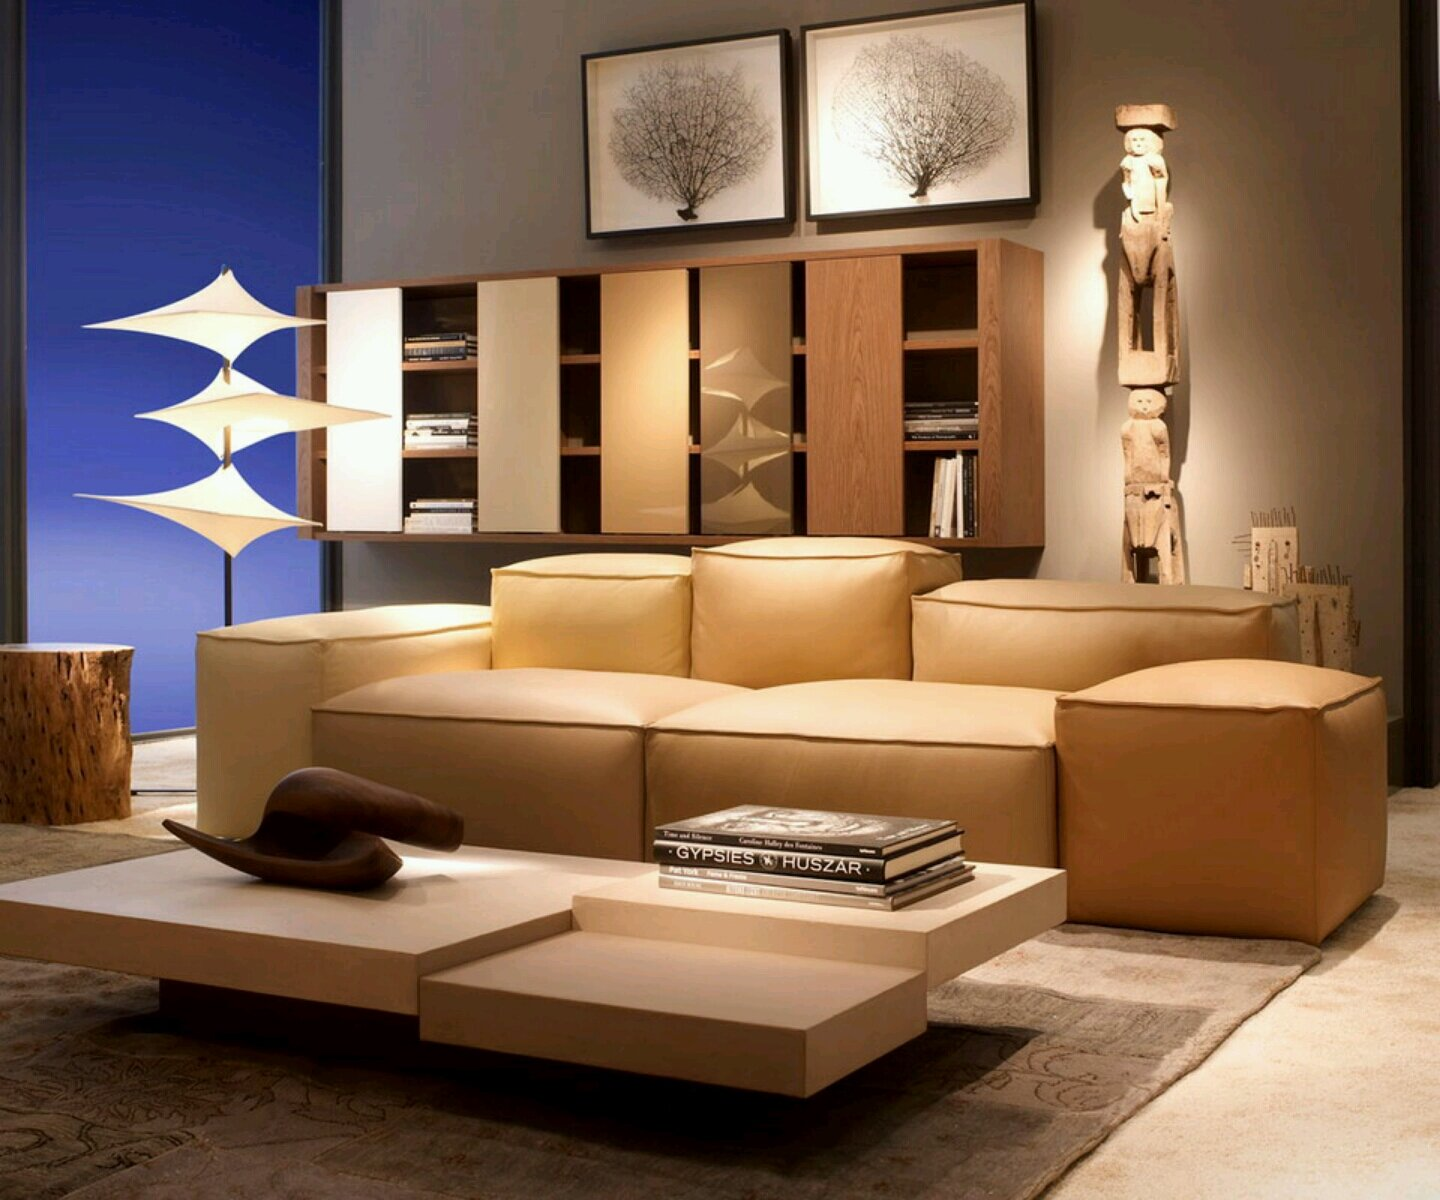 15 really beautiful sofa designs and ideas for Modern furniture sofa